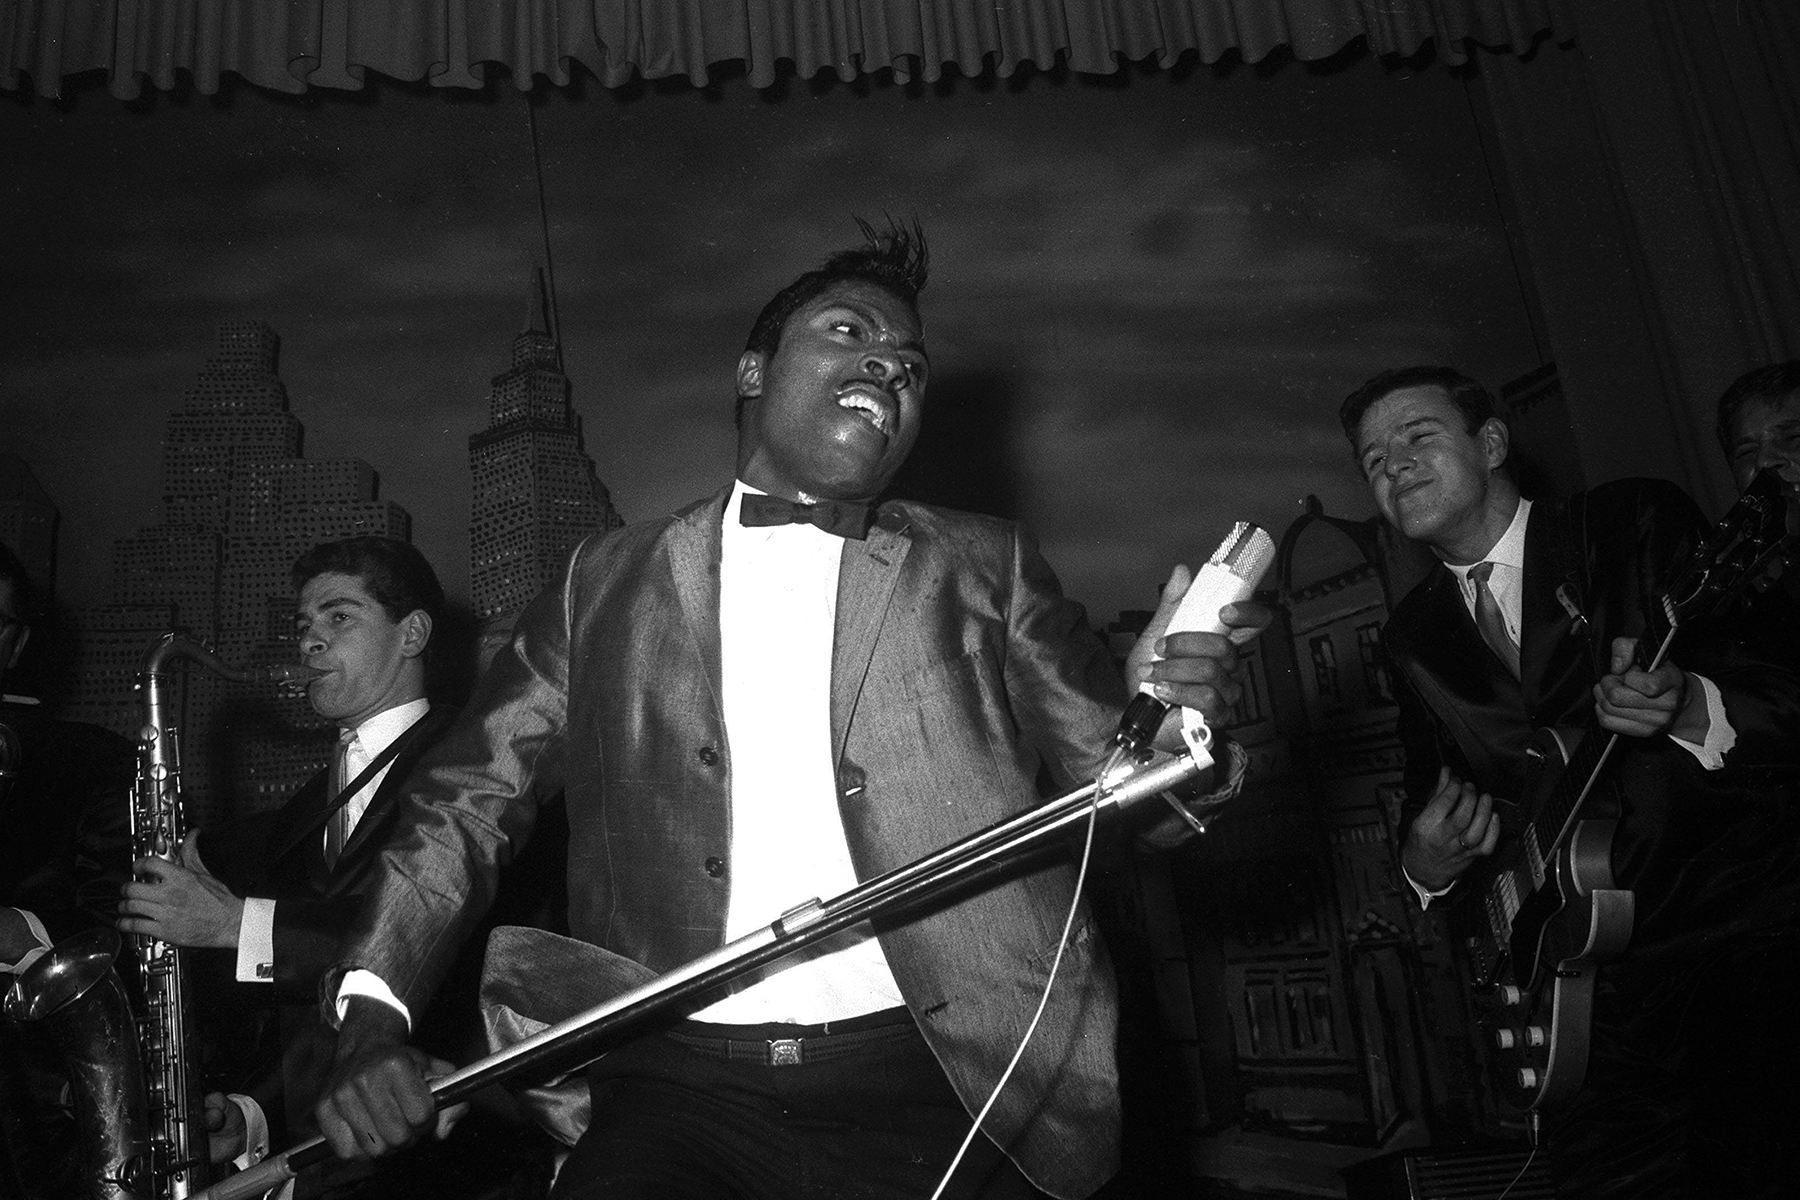 May 9, 2020: FILE: LITTLE RICHARD (Richard Wayne Penniman) a founding father of rock and roll whose fervent shrieks, flamboyant garb, and joyful, gender-bending persona embodied the spirit and sound of that new art form, died Saturday. He was 87. PICTURED: October 31, 1962, Hamburg, Germany: Singer LITTLE RICHARD performs. (Credit Image: © Imago via ZUMA Press)